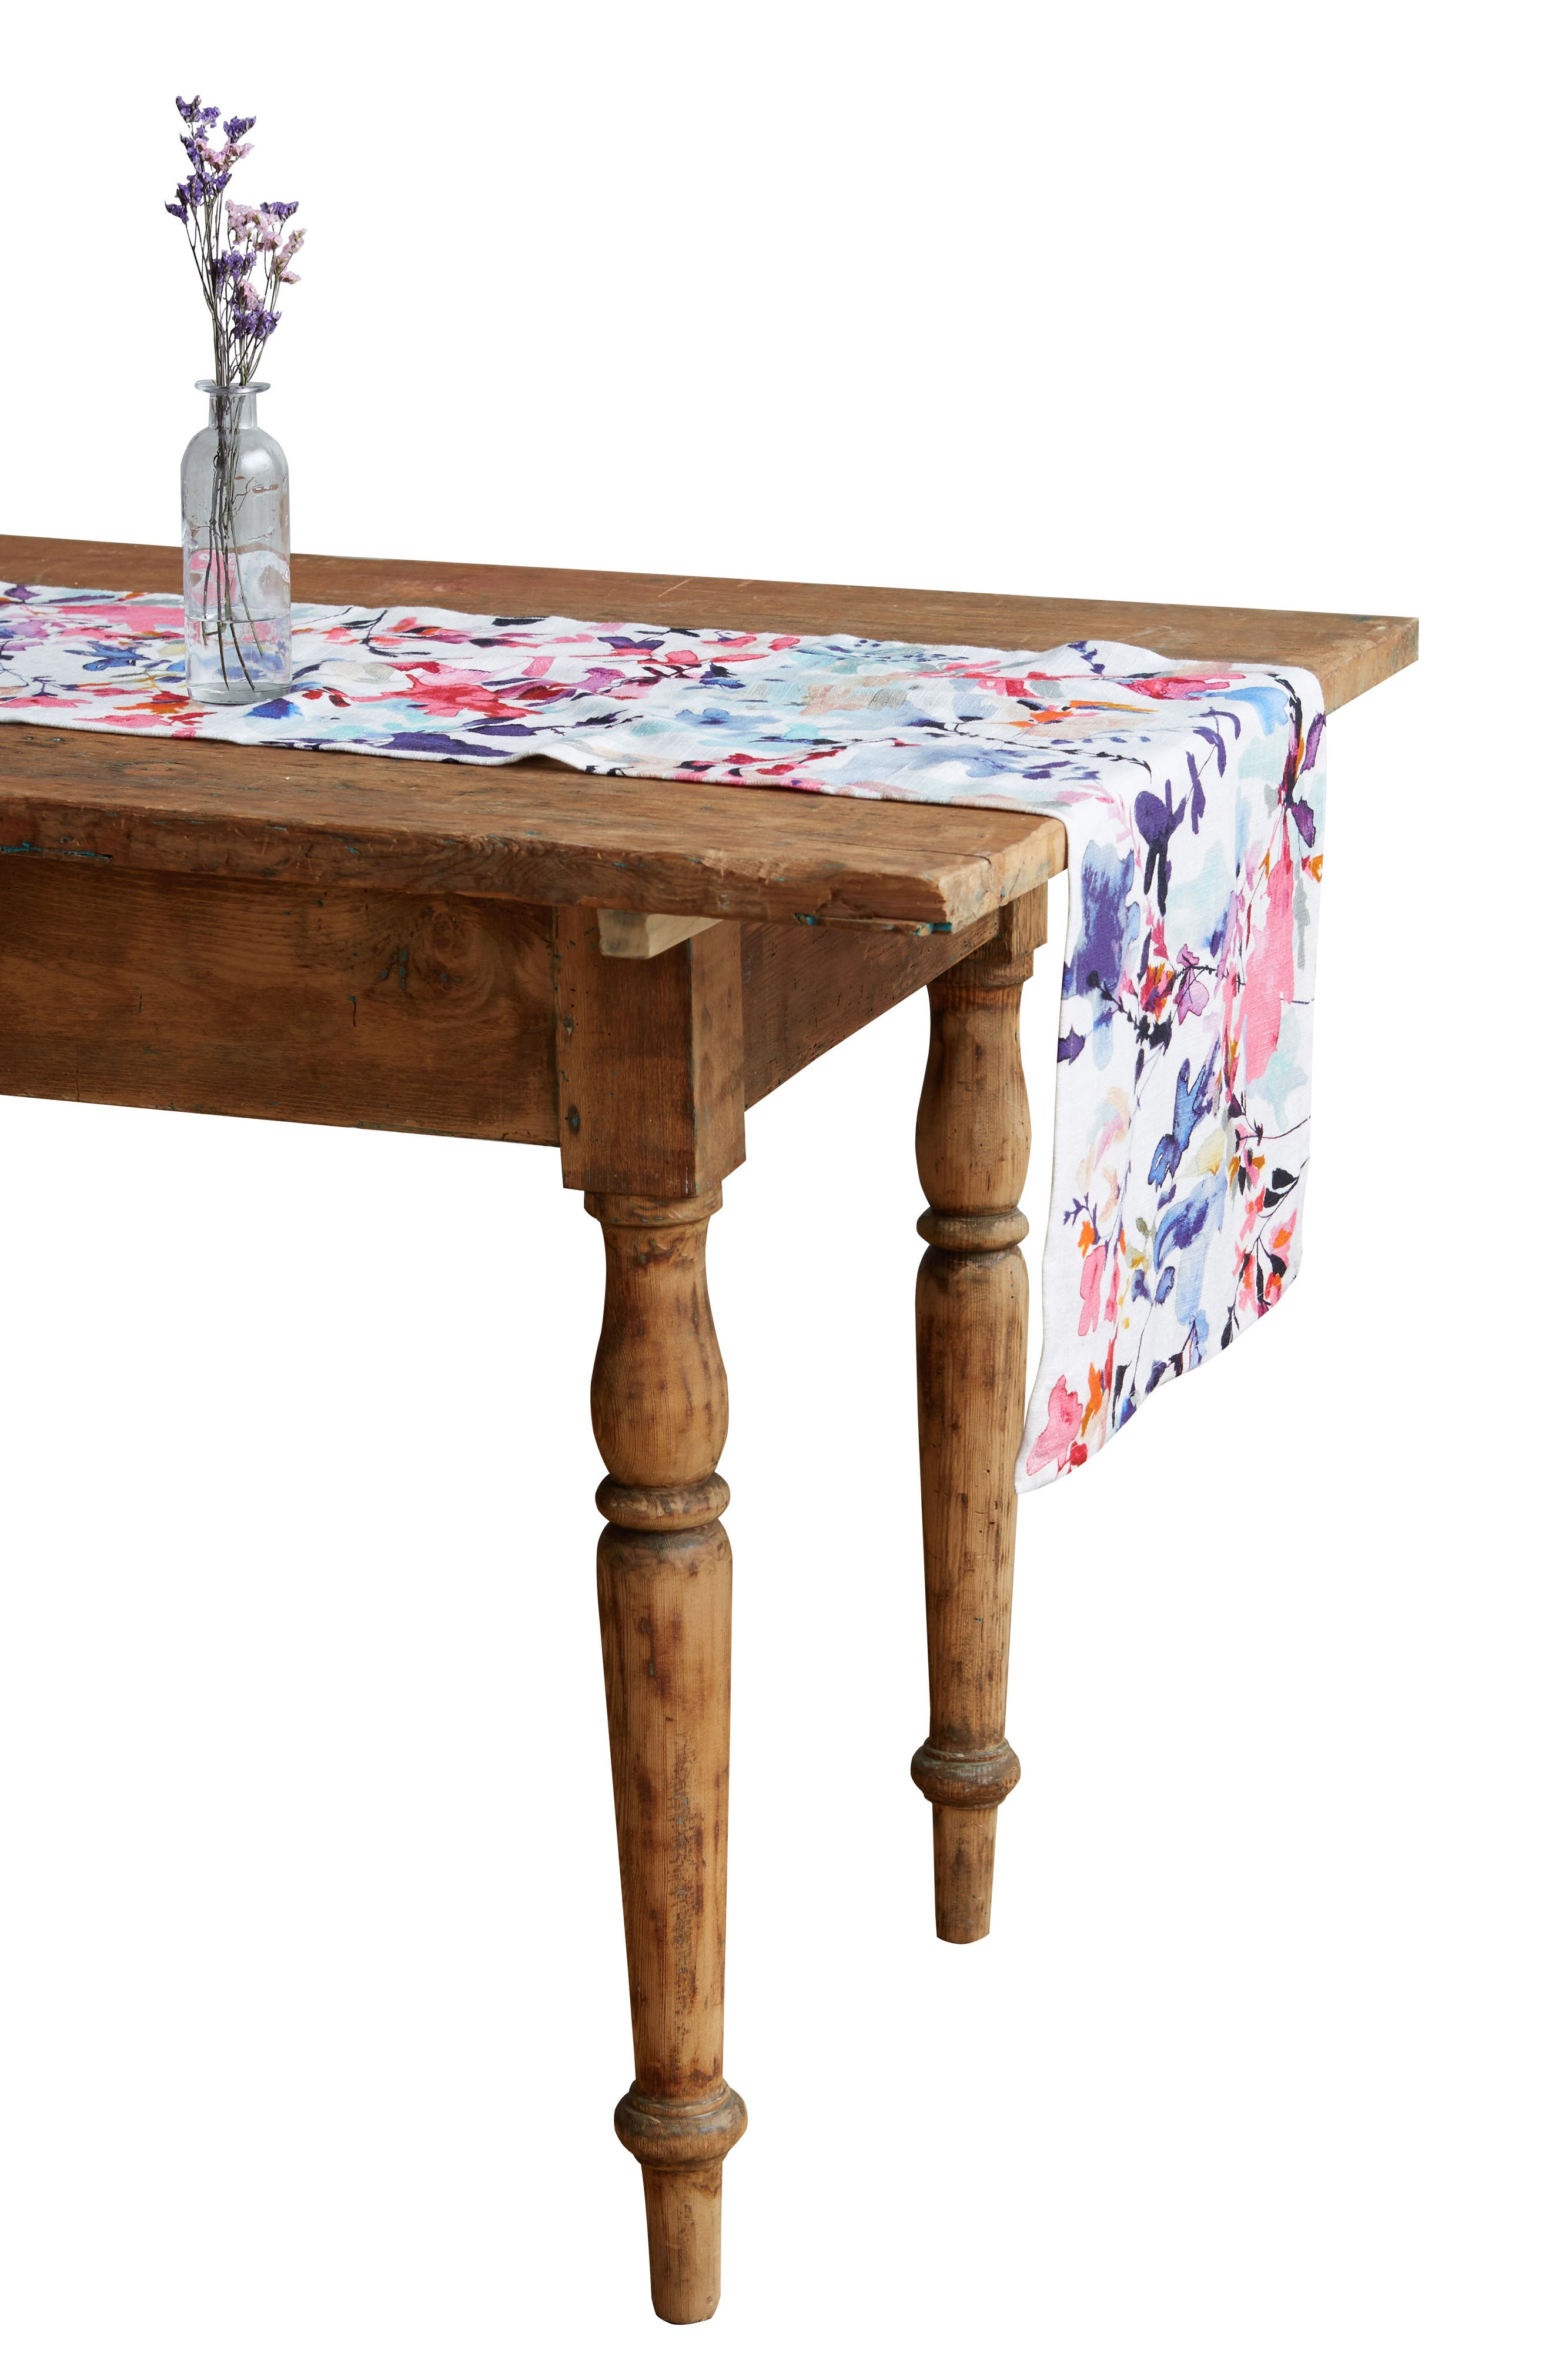 Wildflower Study Table Runner,                             Alternate thumbnail 3, color,                             Pink Multi